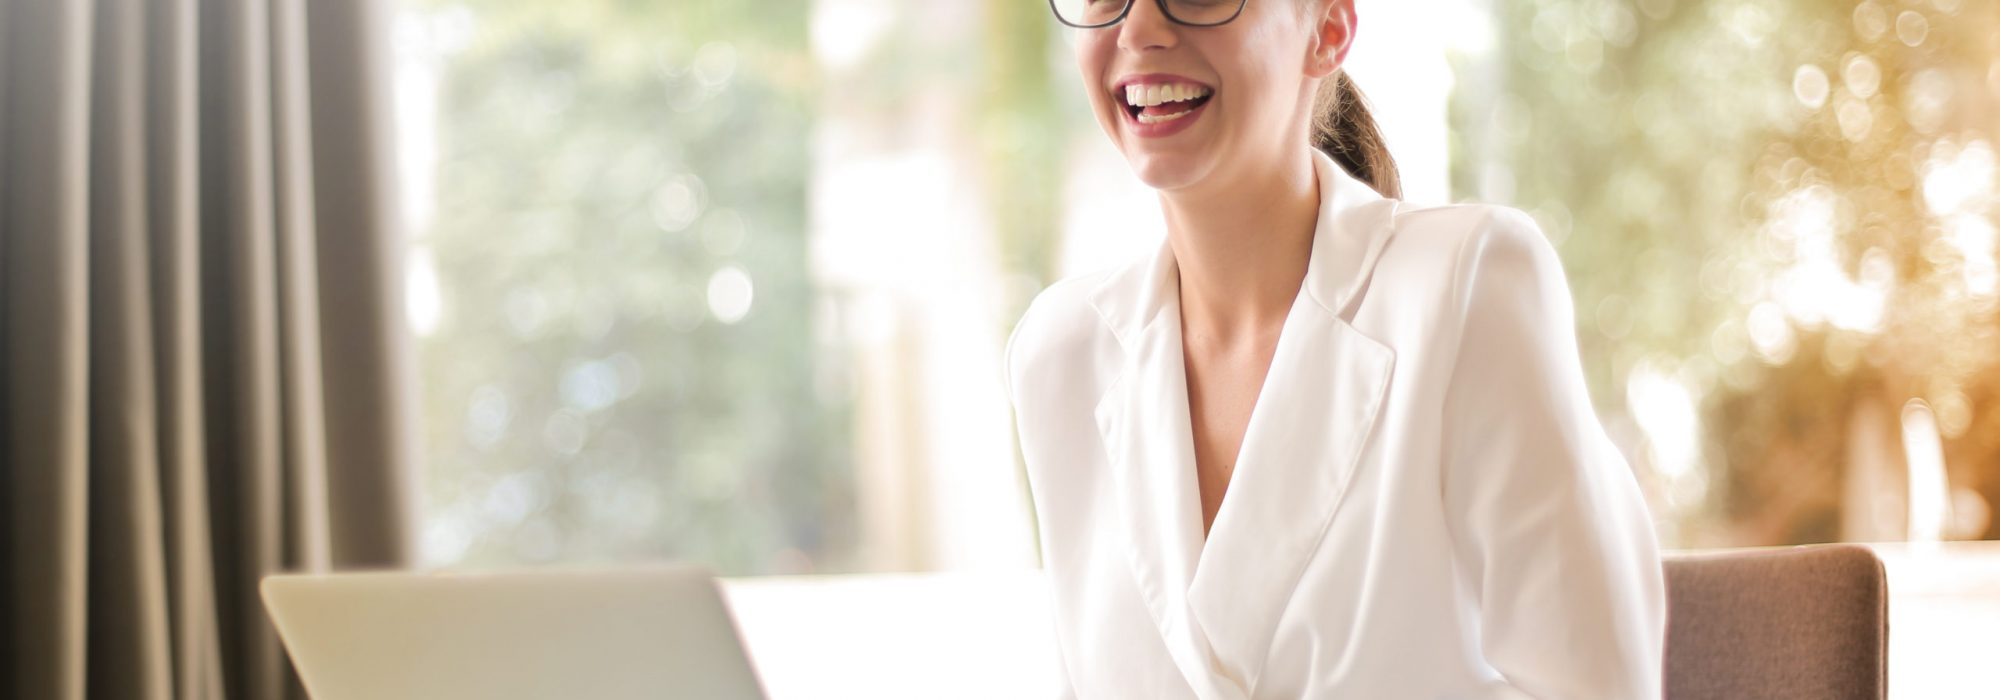 laughing-businesswoman-working-in-office-with-laptop-3756679